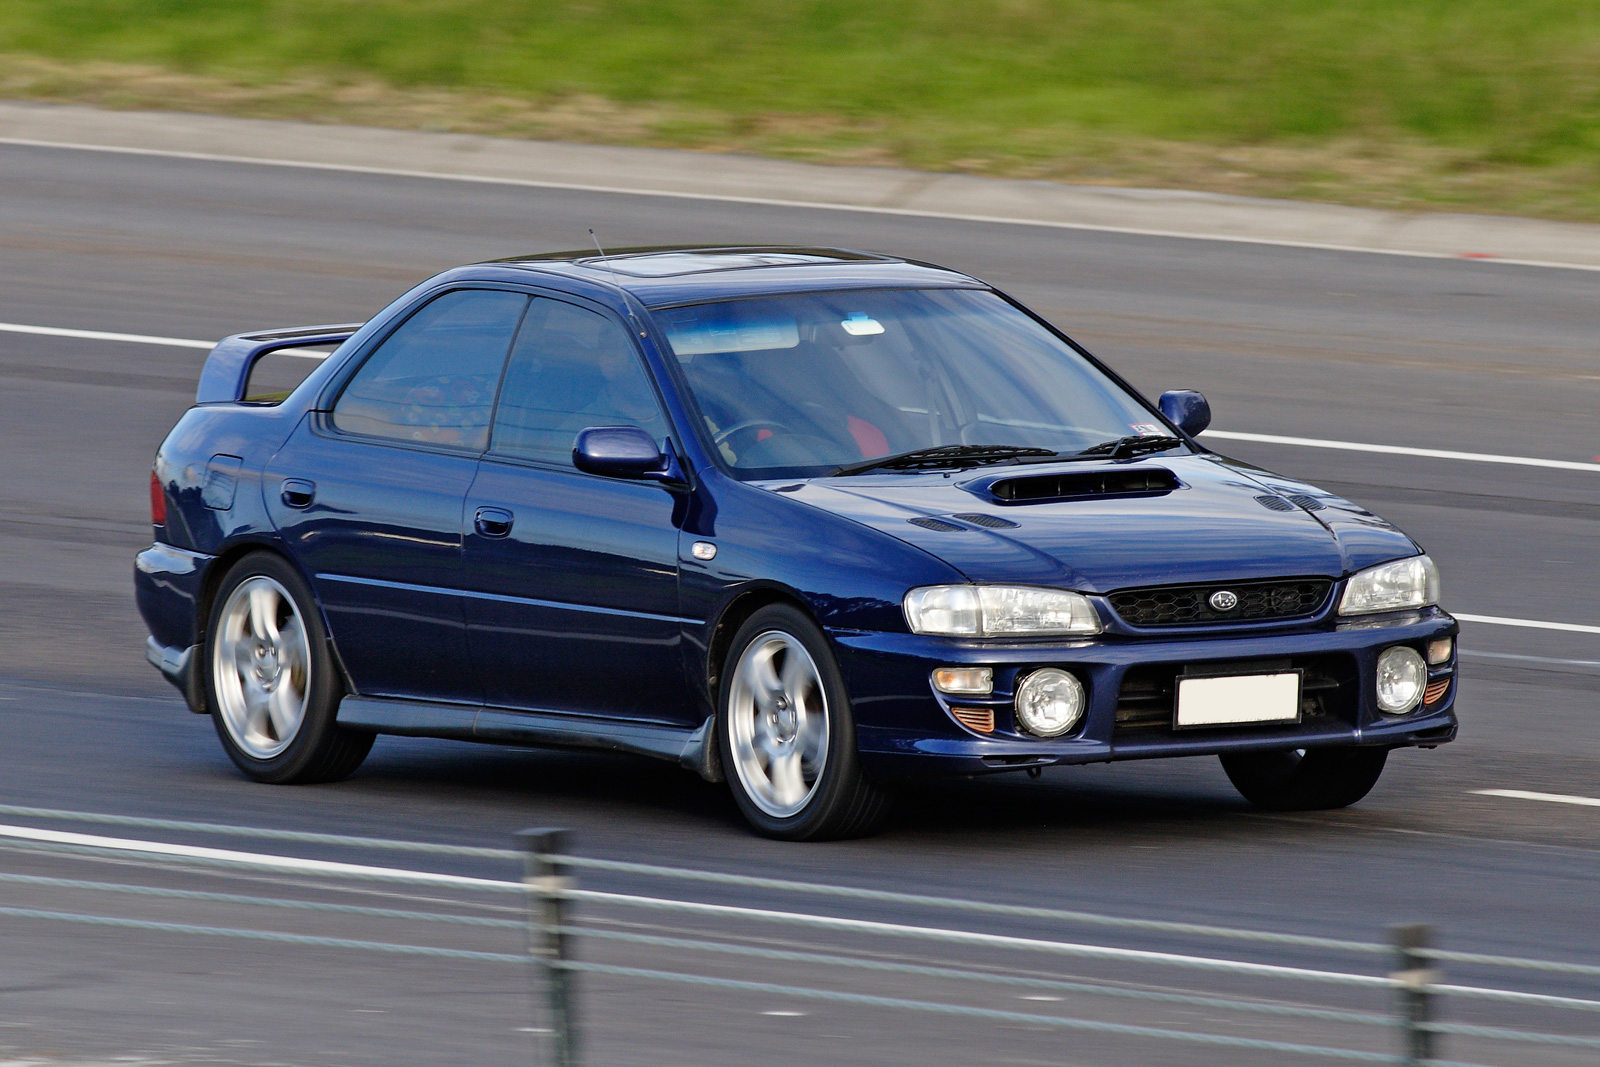 Subaru Impreza Wrx Sedan Wikipedia The Free